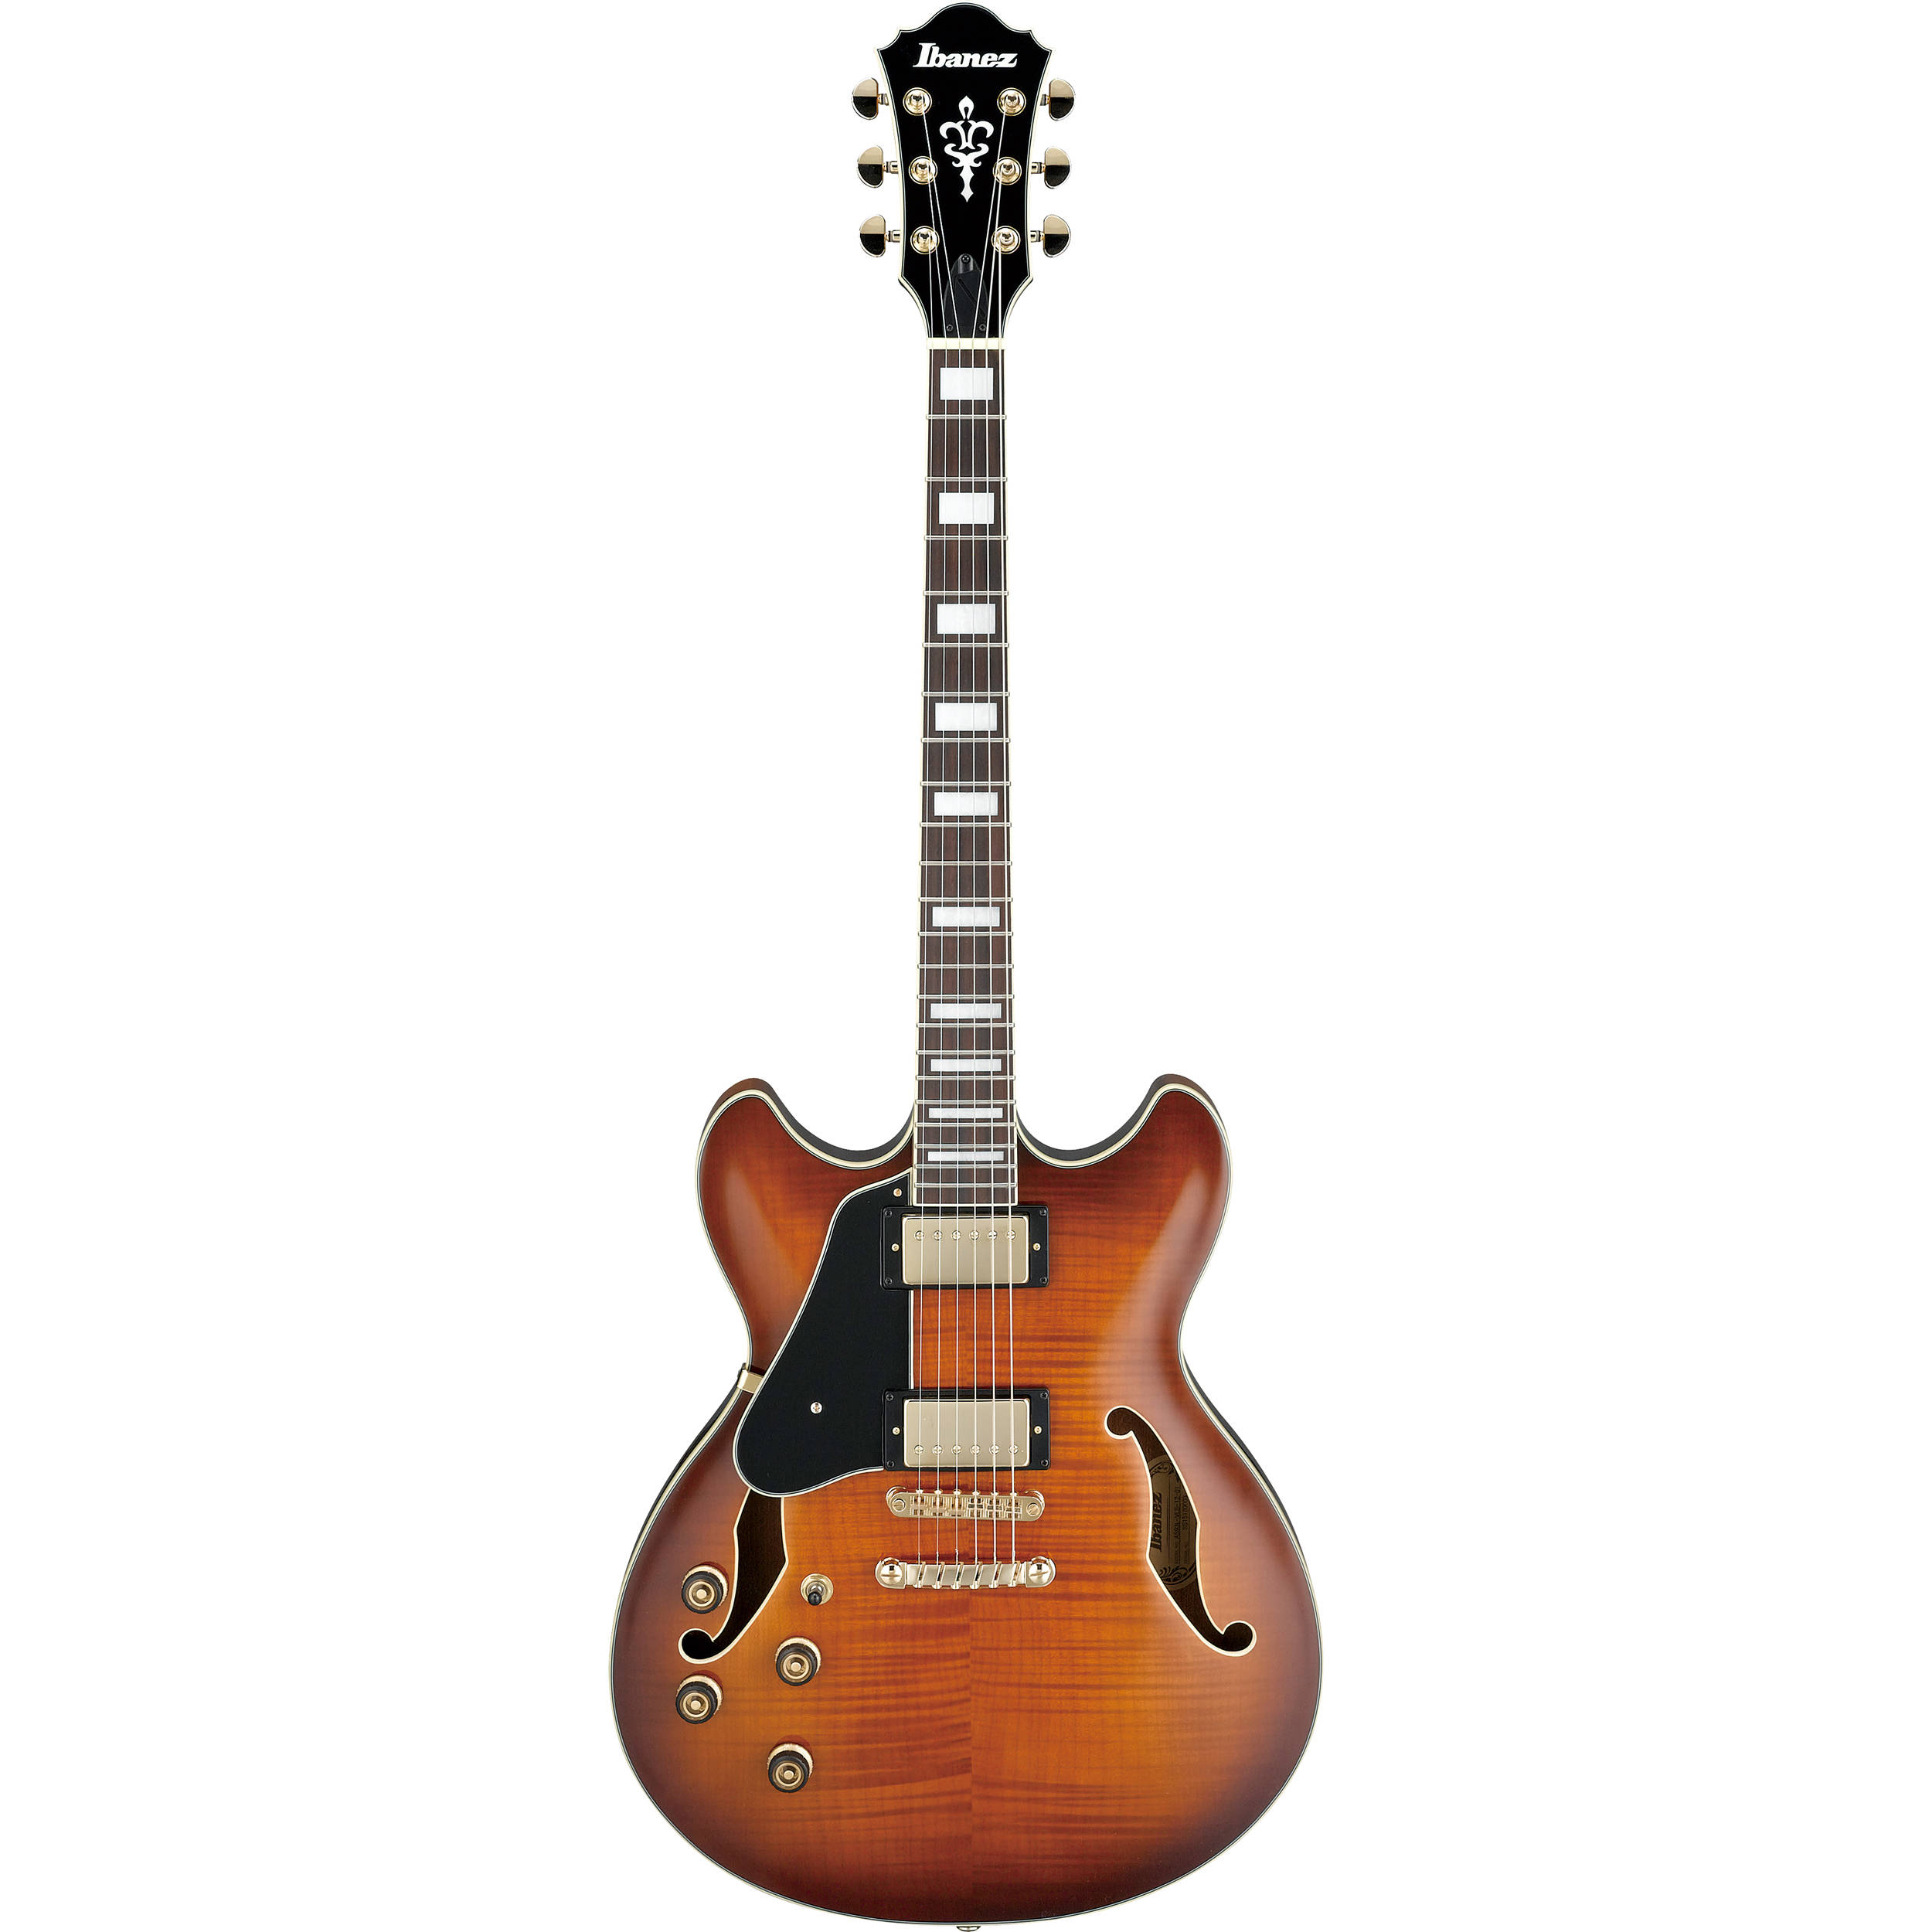 Ibanez Artcore Af75 Wiring Diagram Trusted Diagrams Free Download Harness Upgrade For As93 Block And Schematic U2022 As53